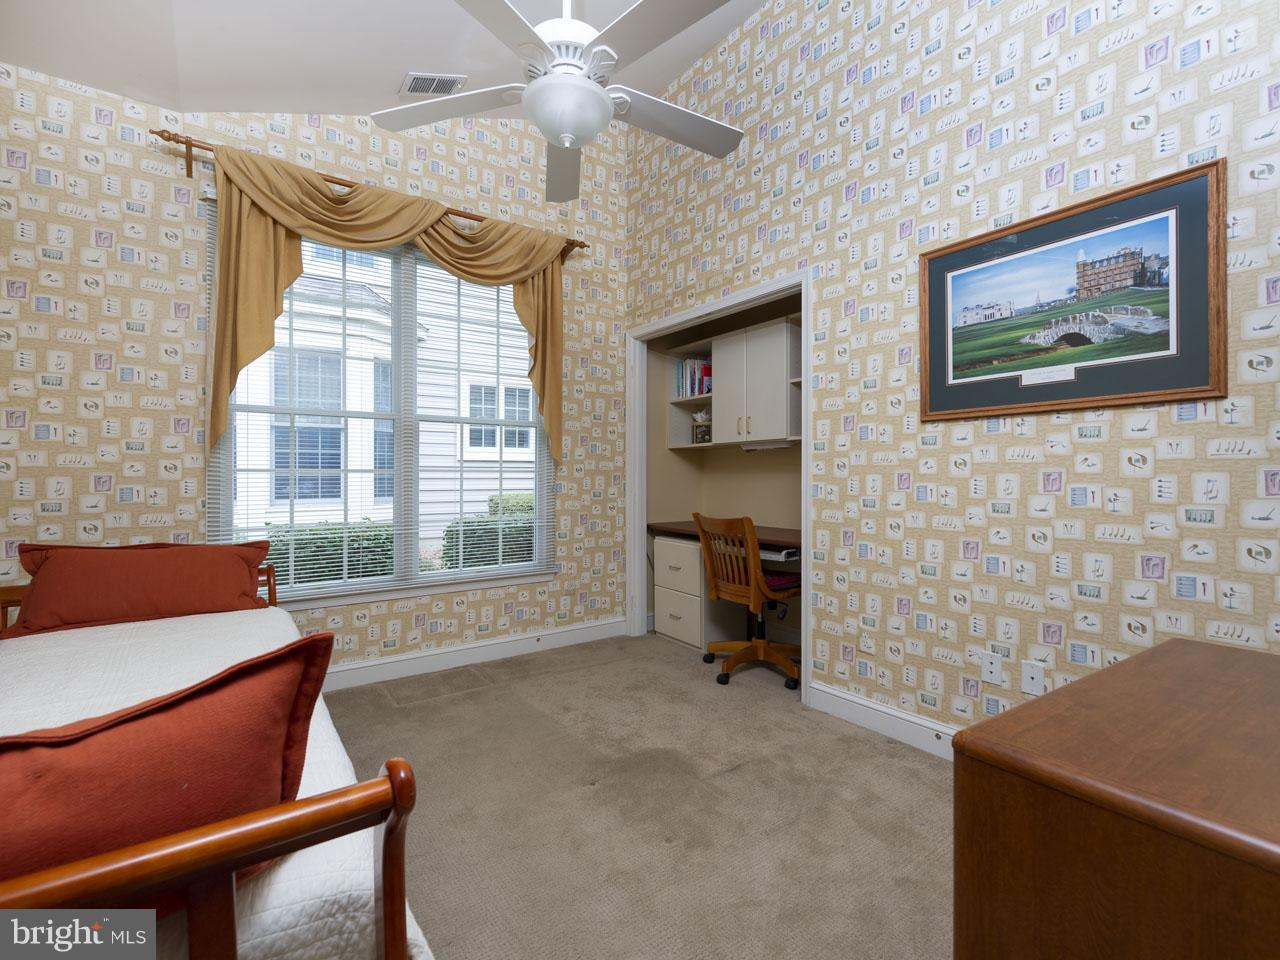 1005040466-300638083738-2021-07-22-06-45-09        Gainesville Delaware Real Estate For Sale   MLS# 1005040466  - Best of Northern Virginia